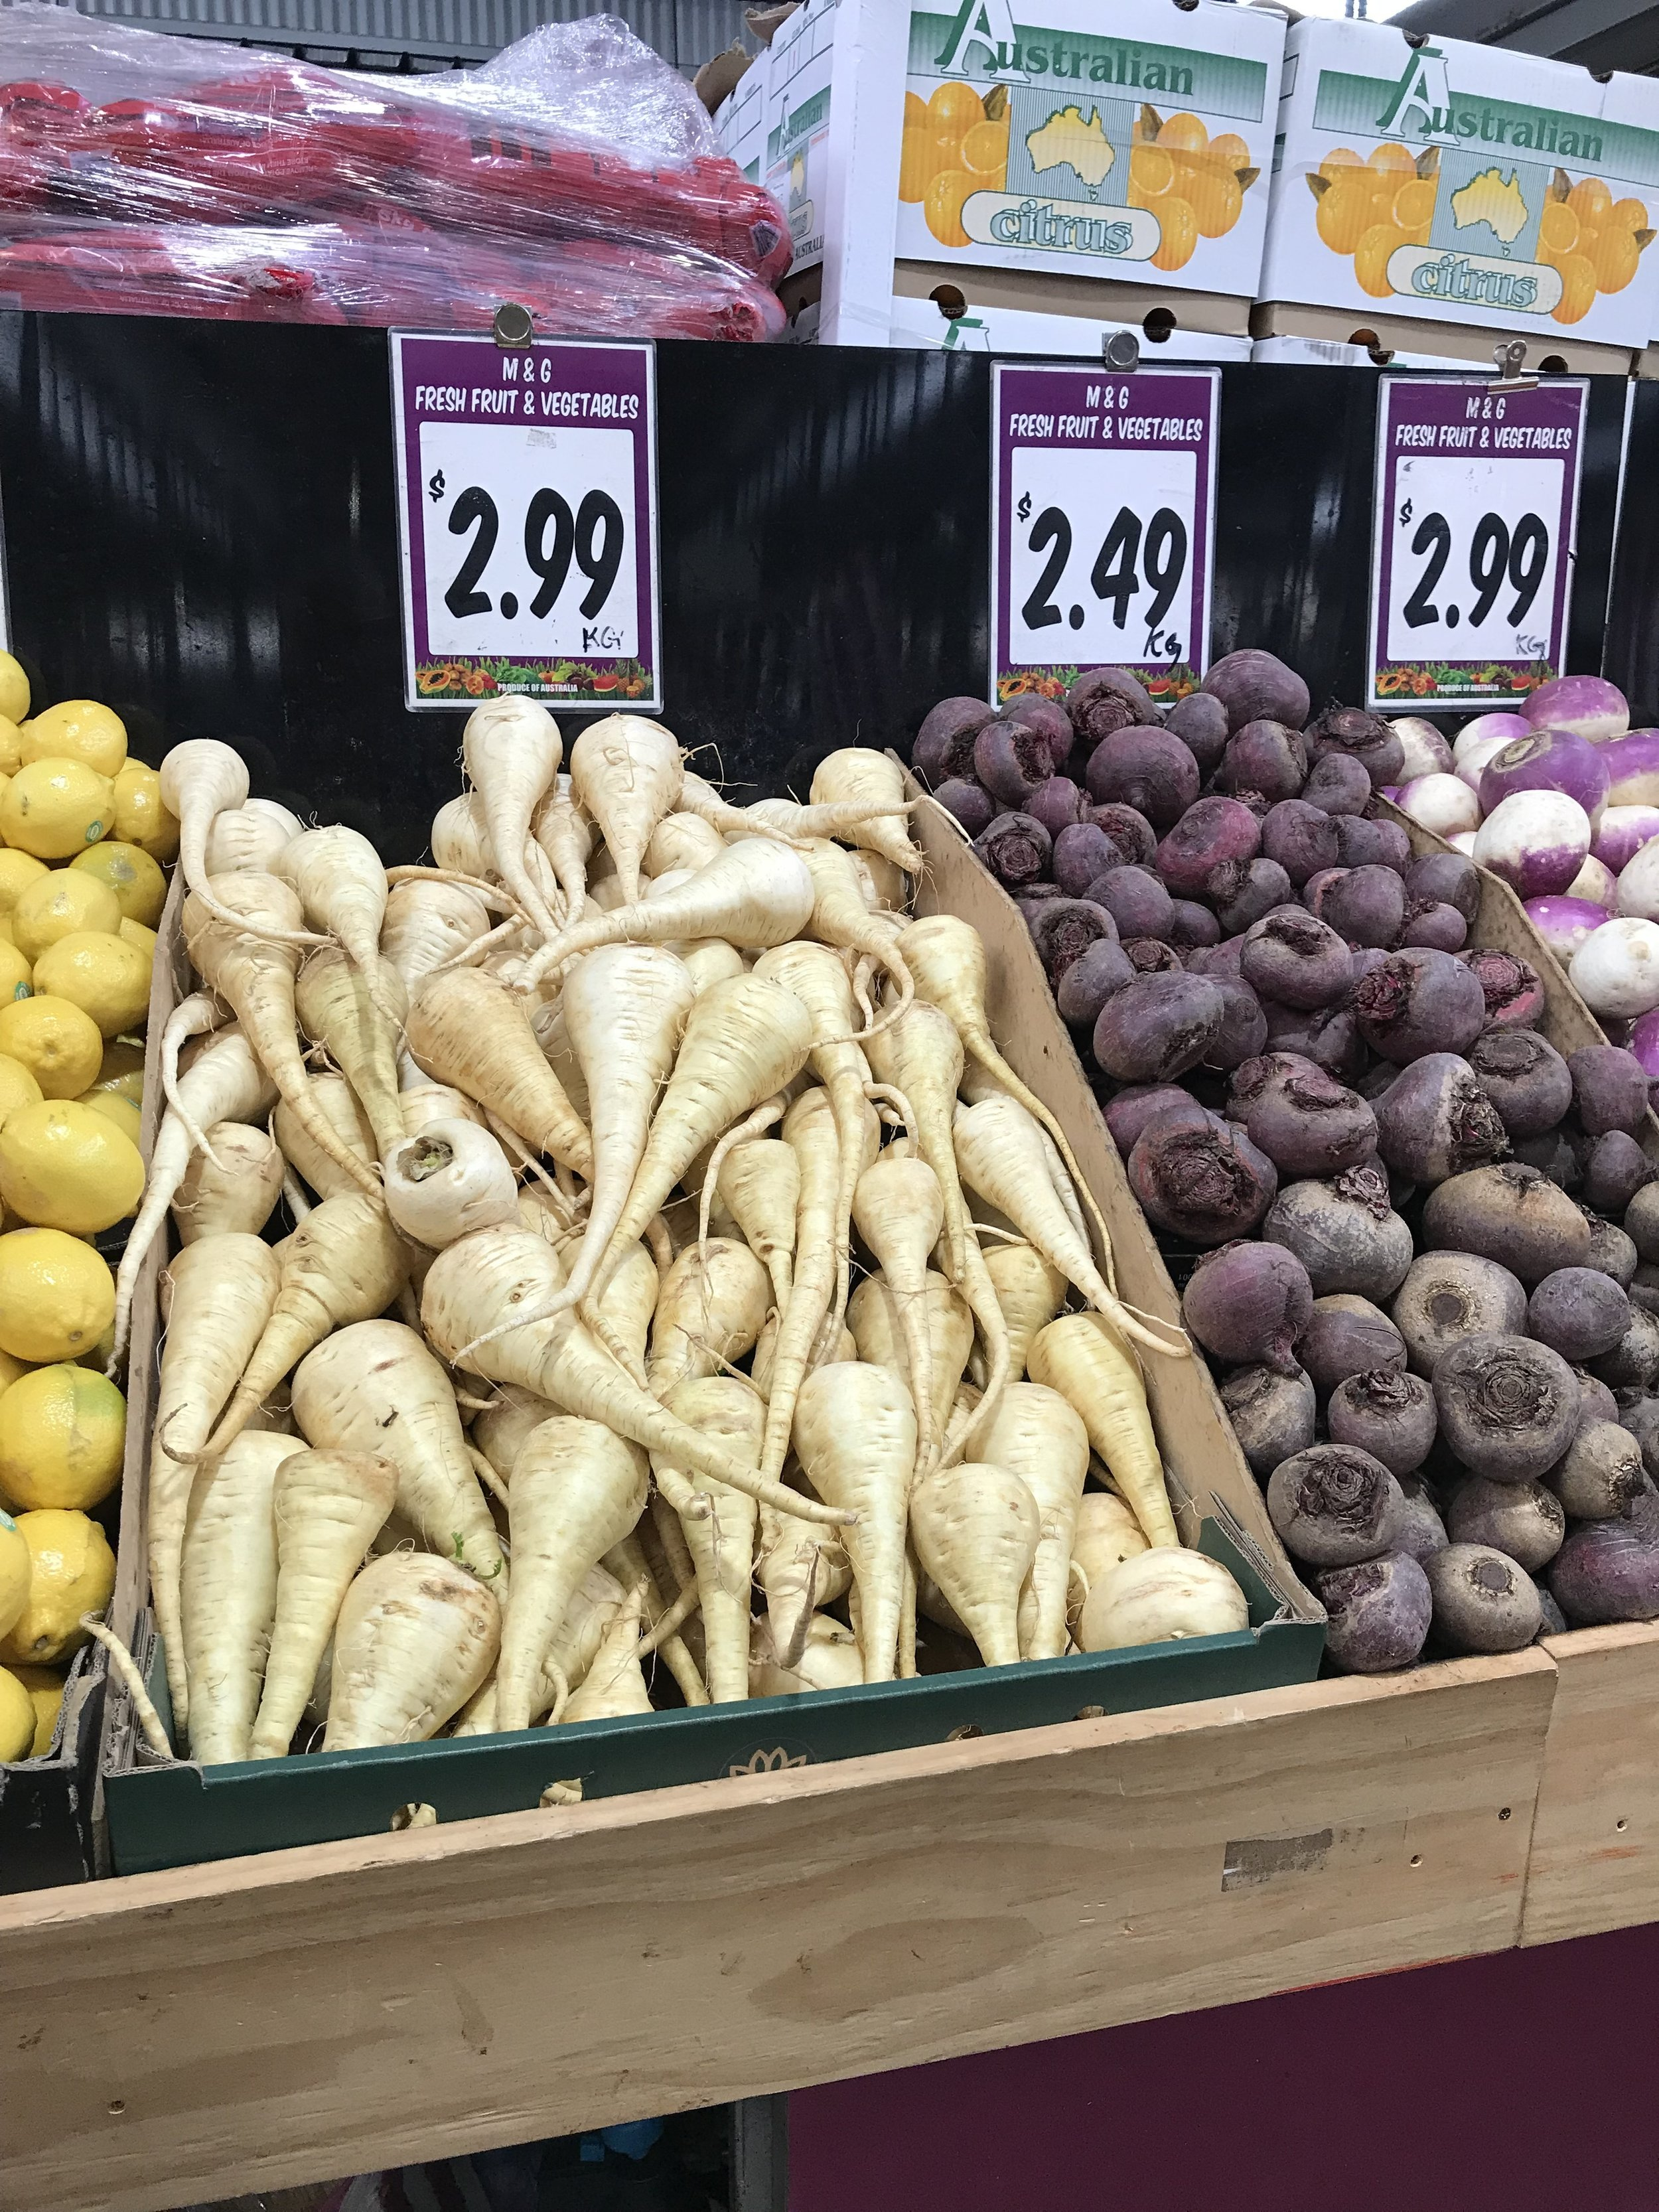 - A successful Colonial version of the myrnong?The humble parsnip, produced on-mass in Victorian soils for $2.99/kg.